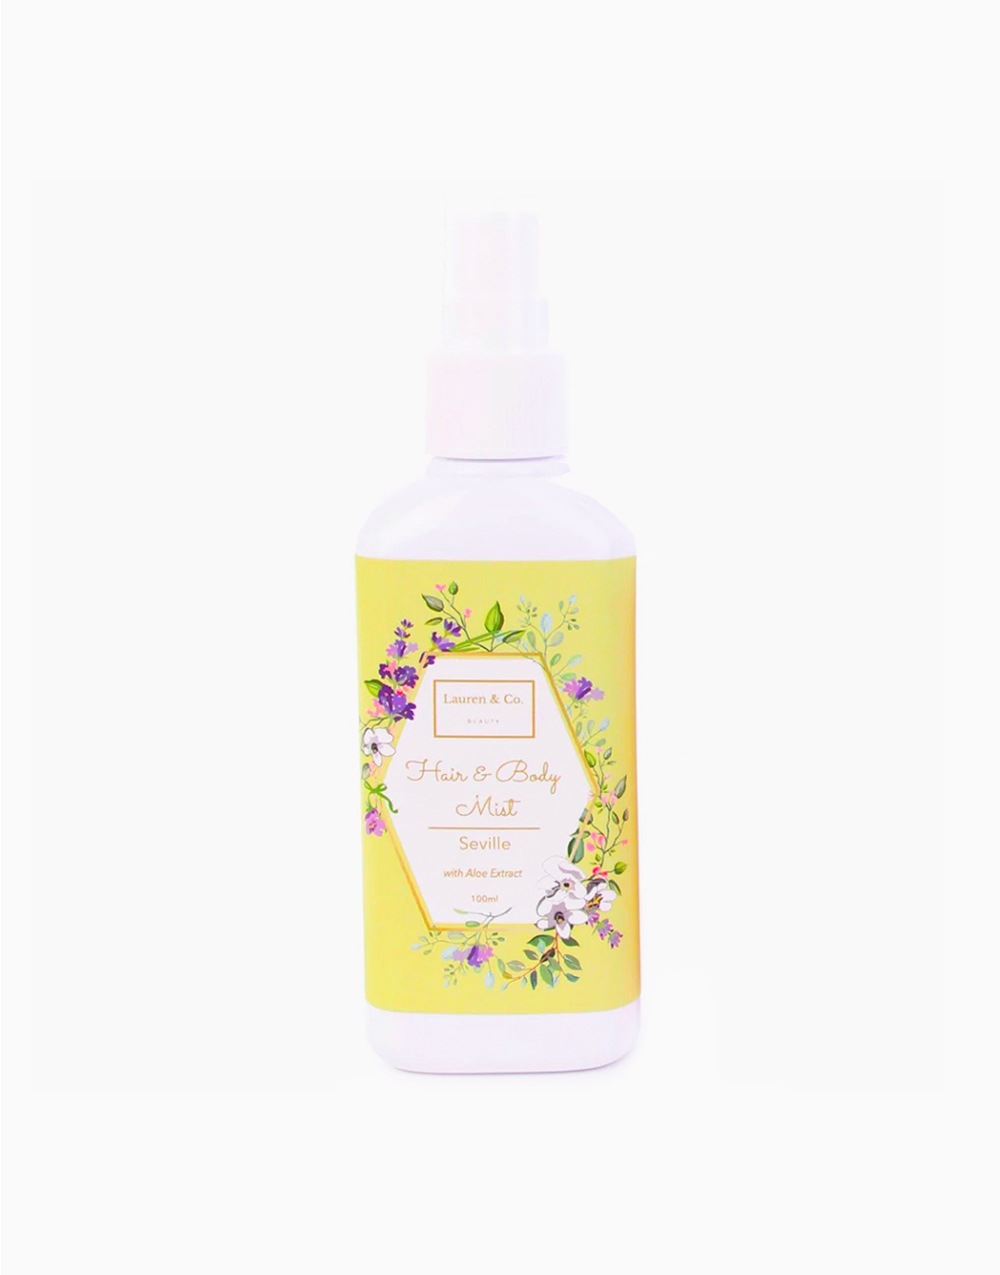 Hair & Body Mist with Aloe Extracts in Seville by Lauren & Co Beauty